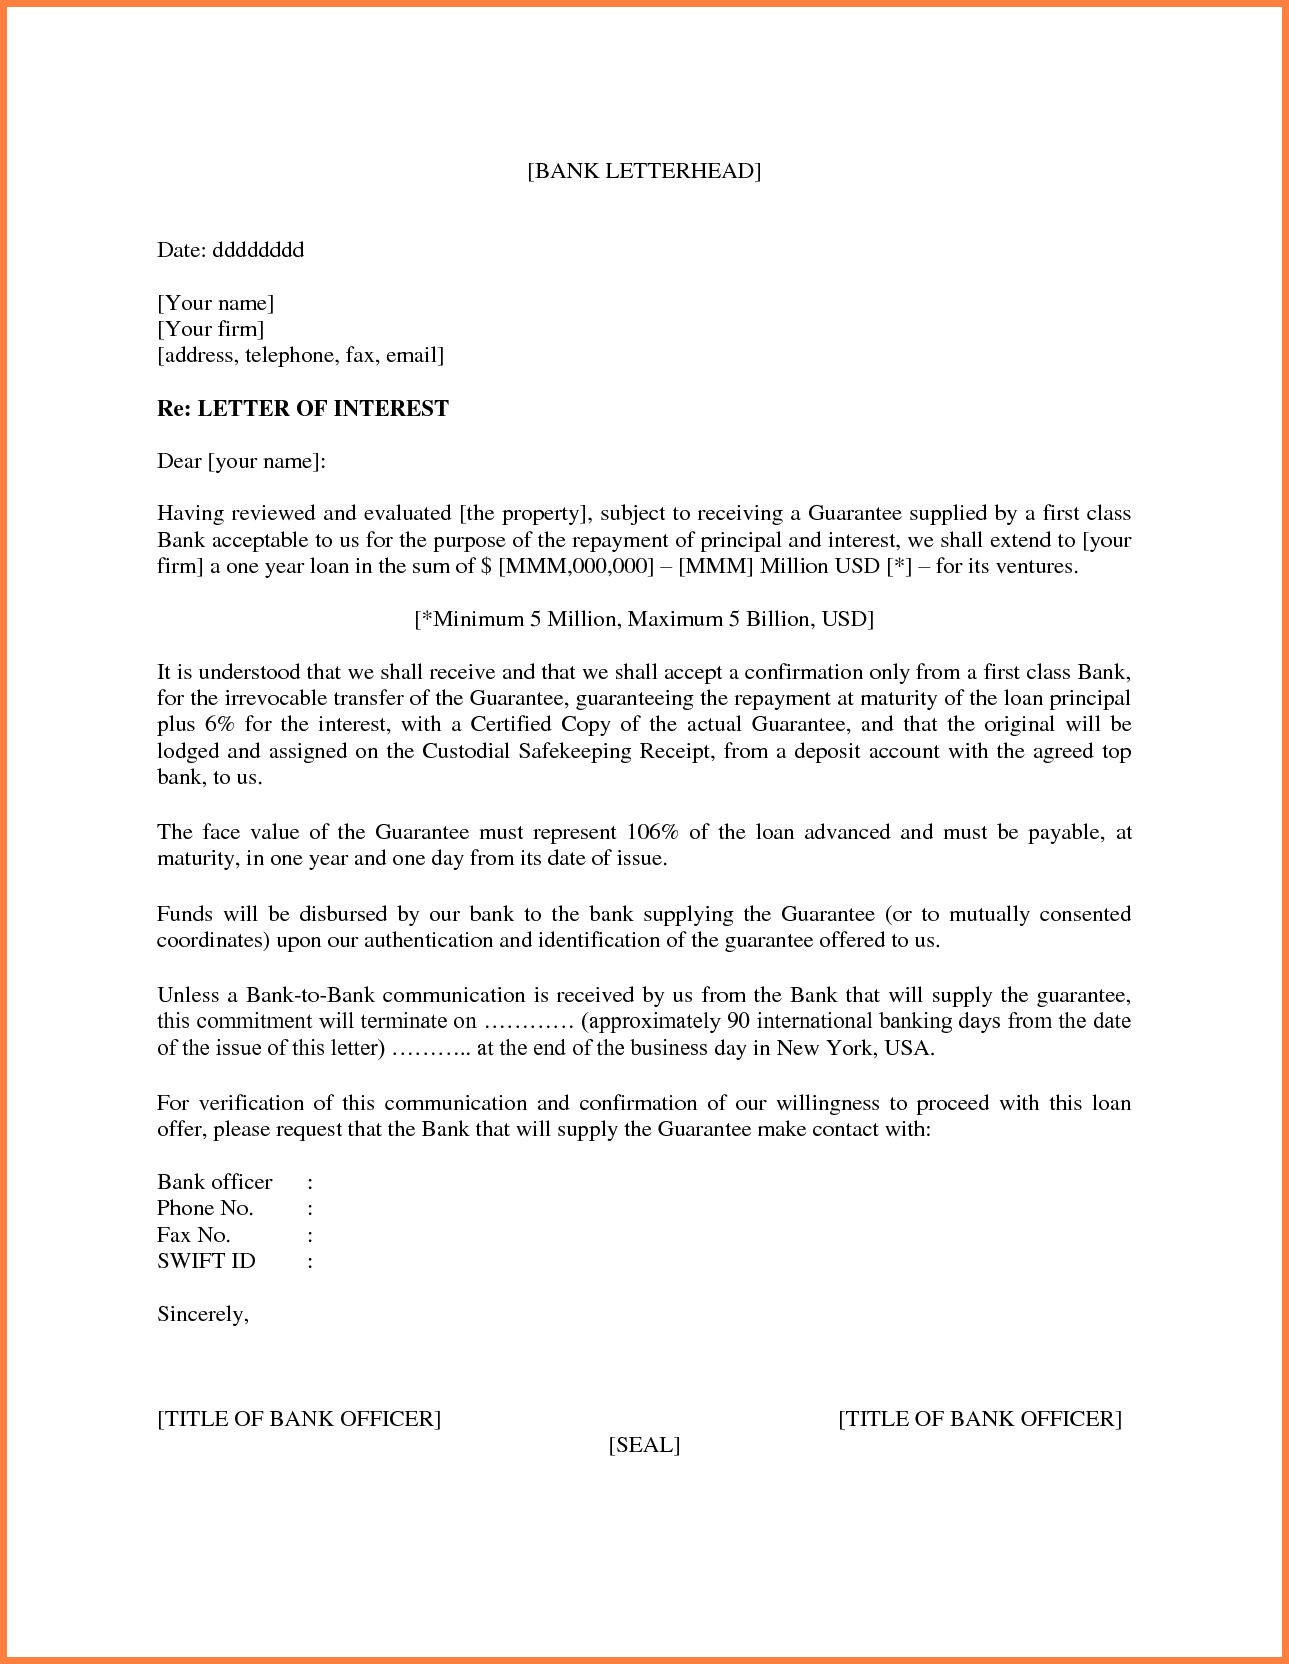 Letter Of Interest Template Microsoft Word 11 New Thoughts Inside Letter Of Interest Template Microsoft Word